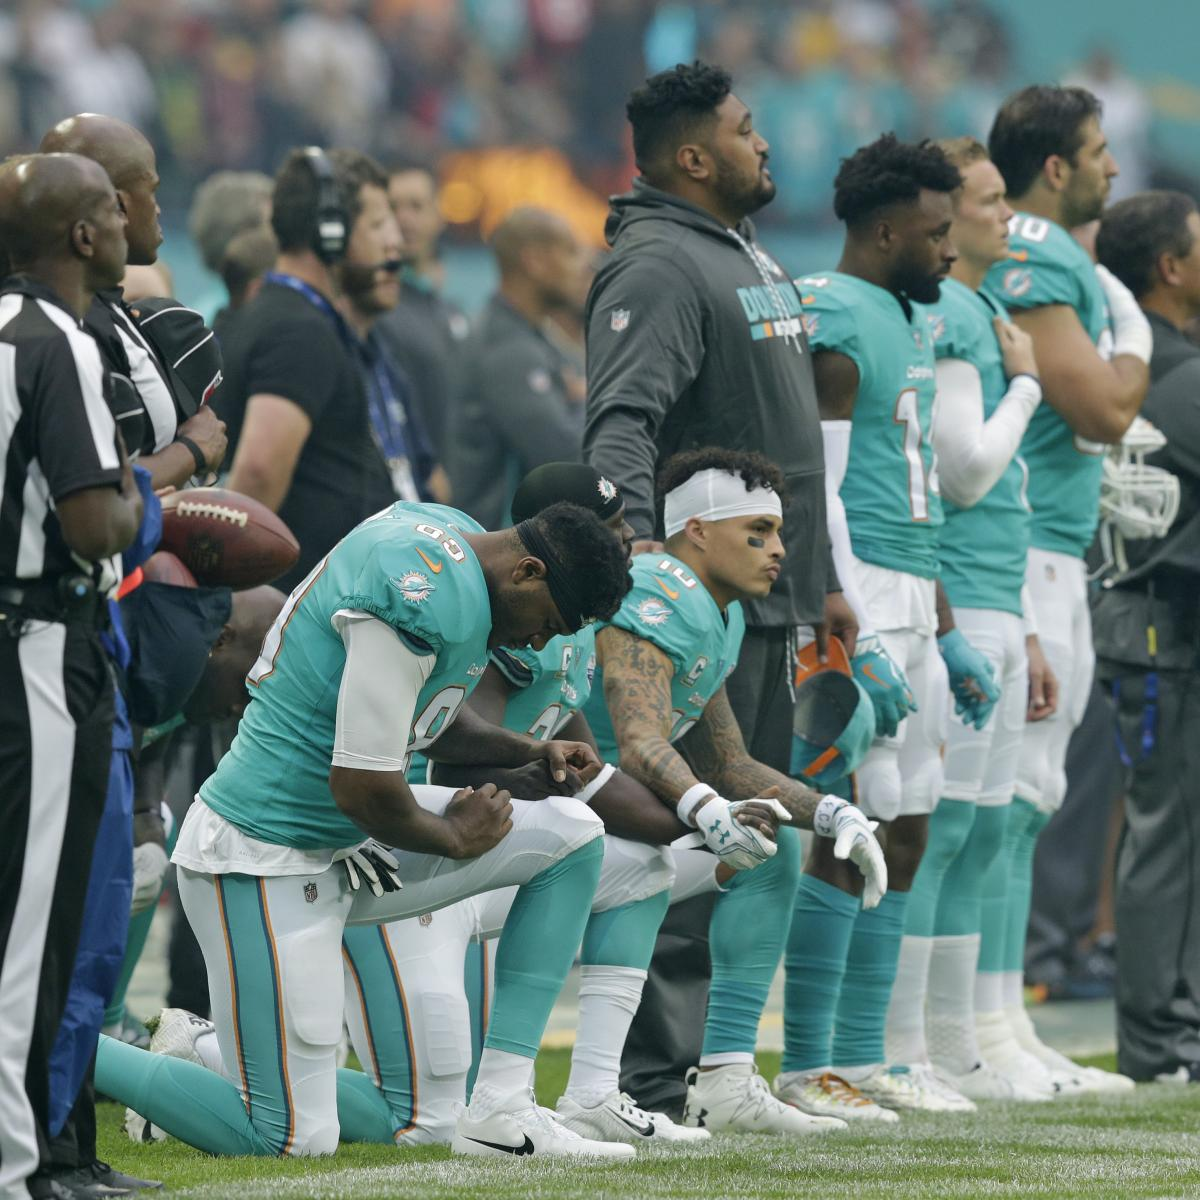 Truce with Union May Bring NFL Peace, but There's No Escaping Politics Anymore